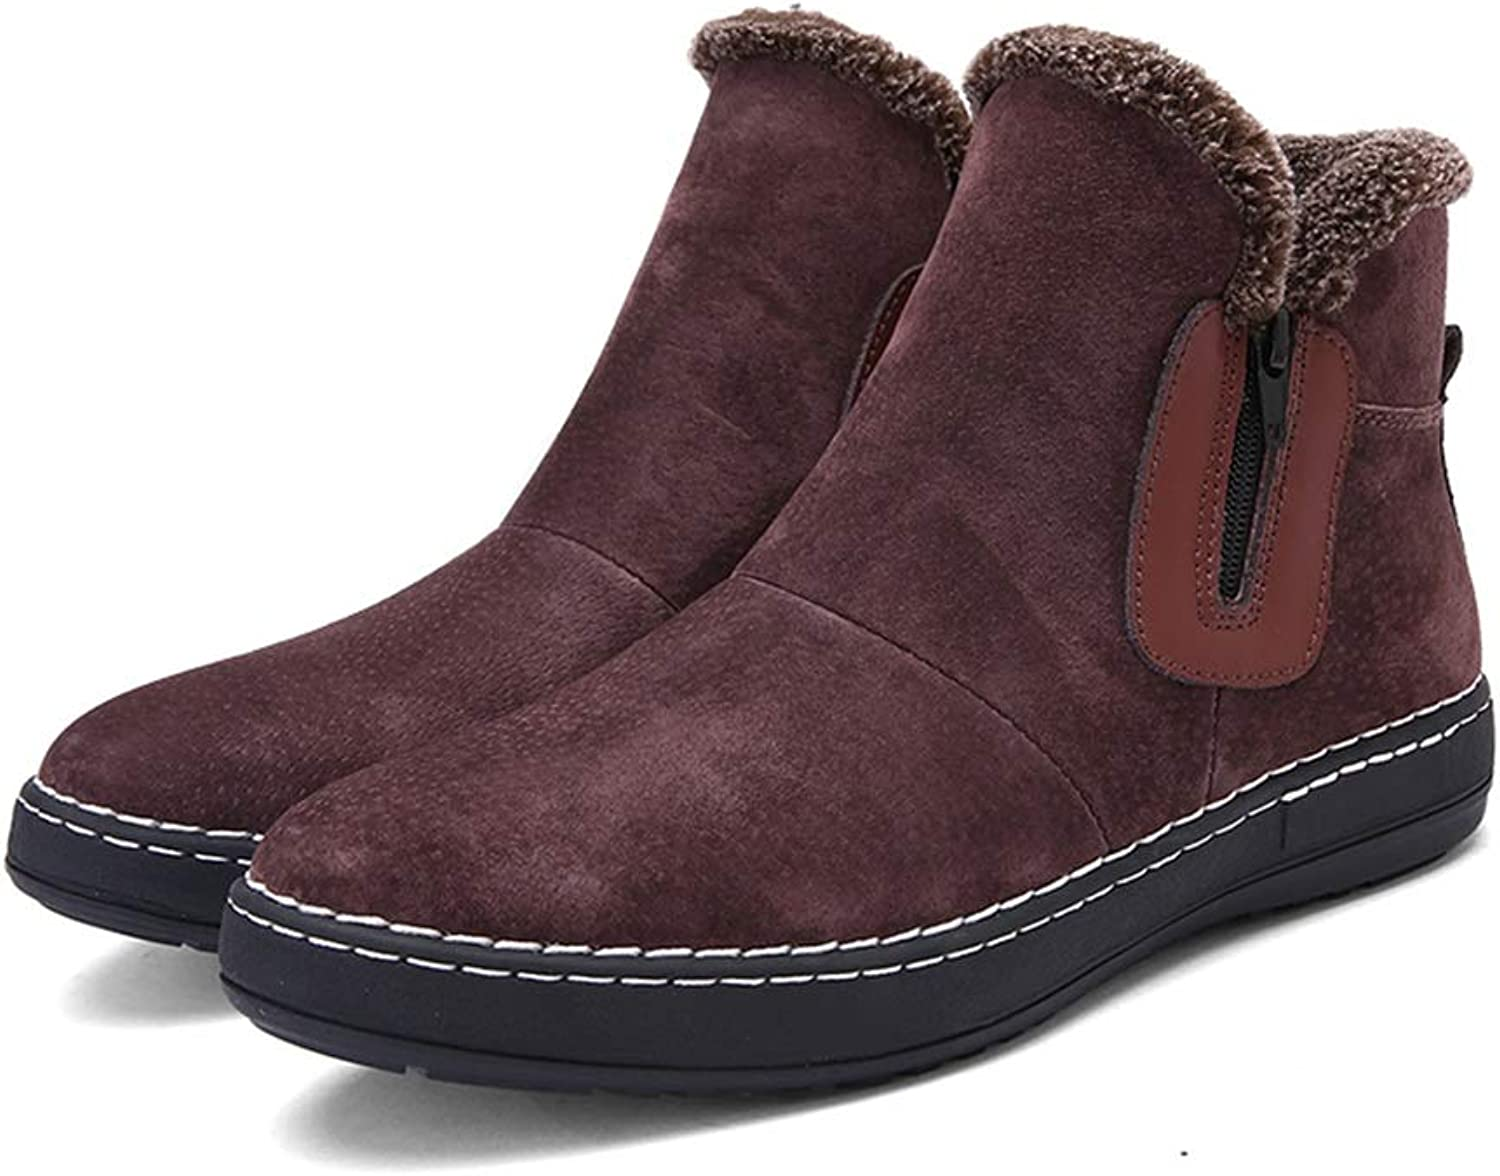 2018 New Mens boots, Men's Comfortable High Top Winter Faux Fleece Inside Home shoes Fashionable Snow Boots Casual (color   Brown, Size   8.5 UK)